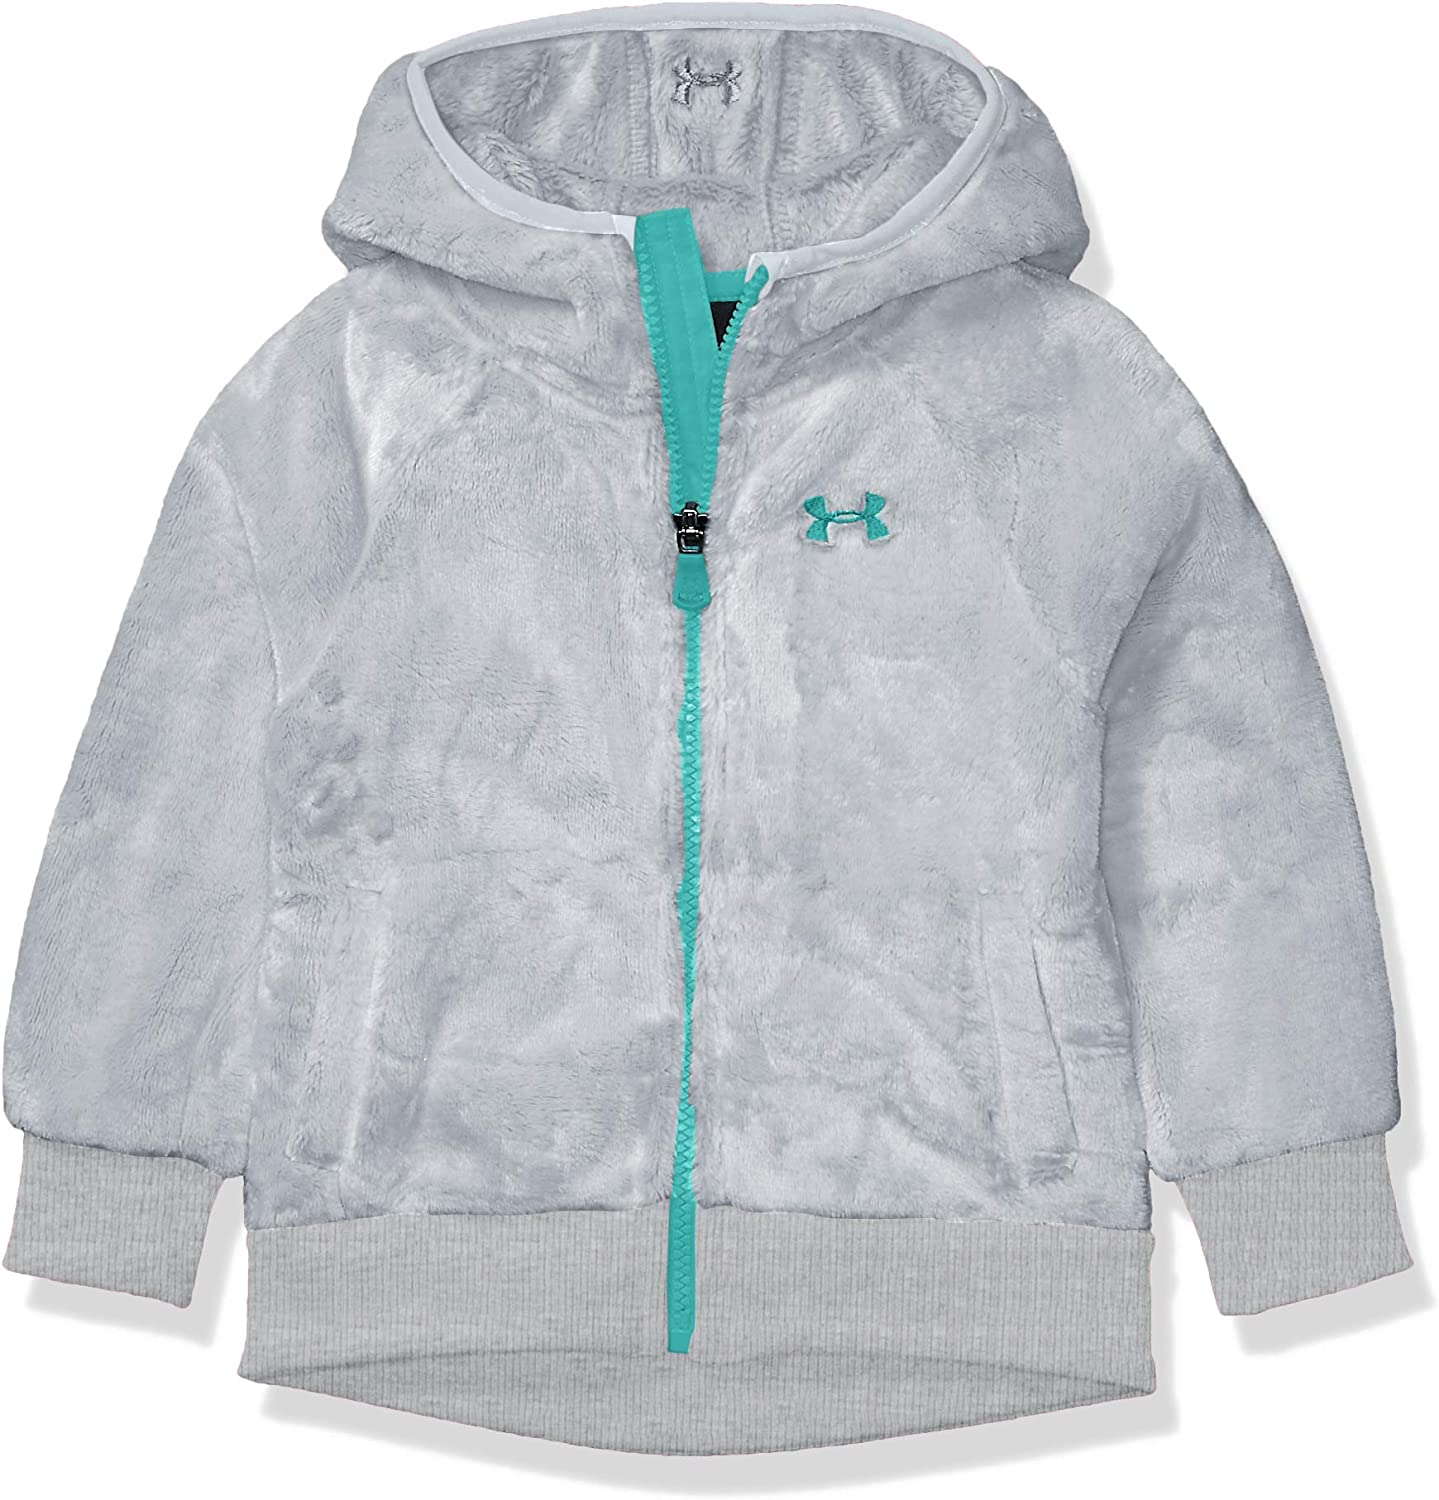 Under Armour Girls' ColdGear Cozy Hooded Jacket with Pocket